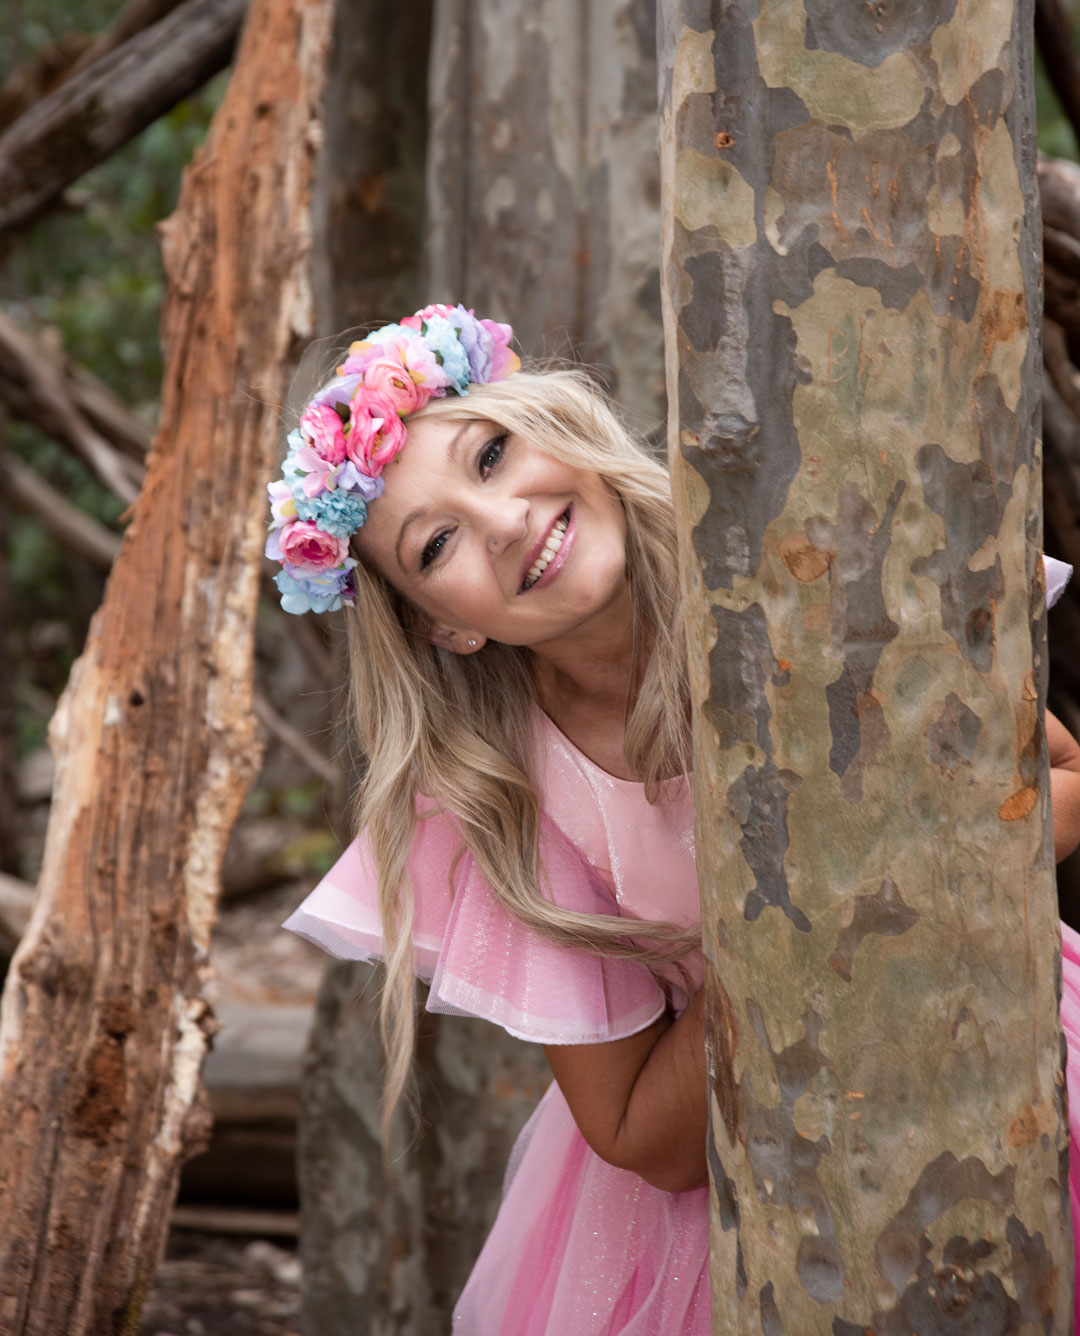 Fairybelle peeking out from behind a tree